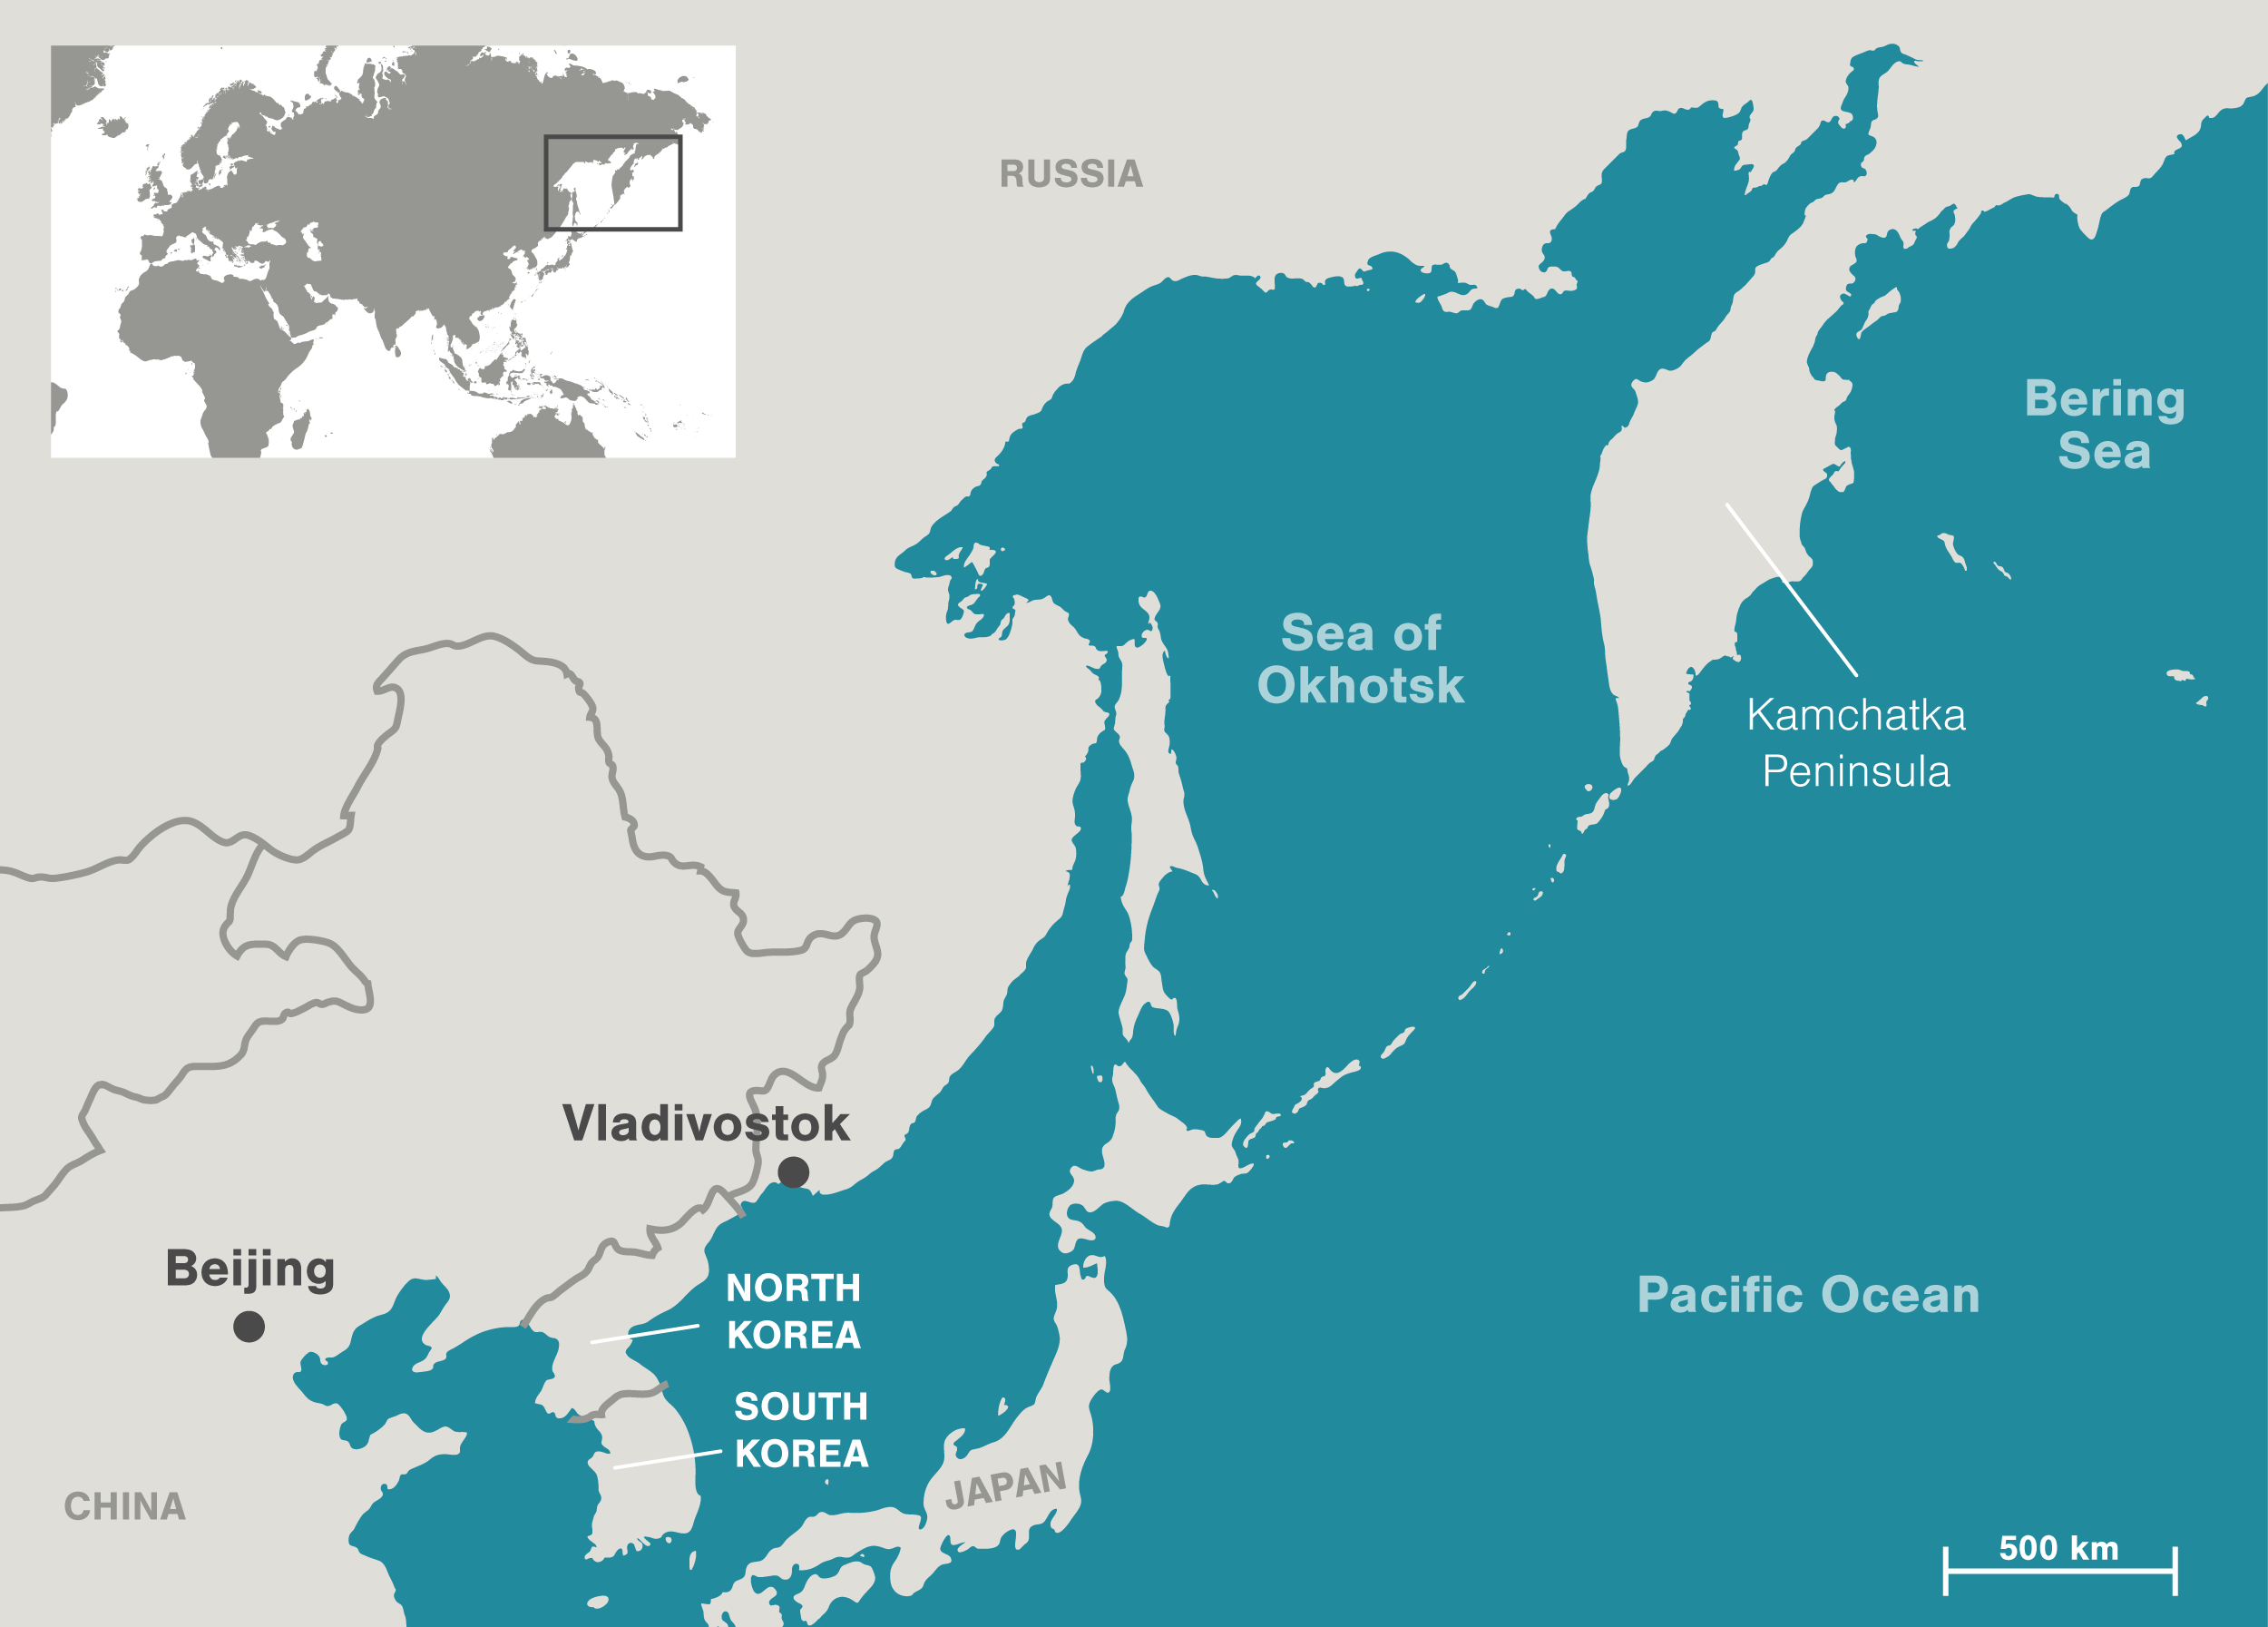 map of the Sea of Okhotsk and surrounding area